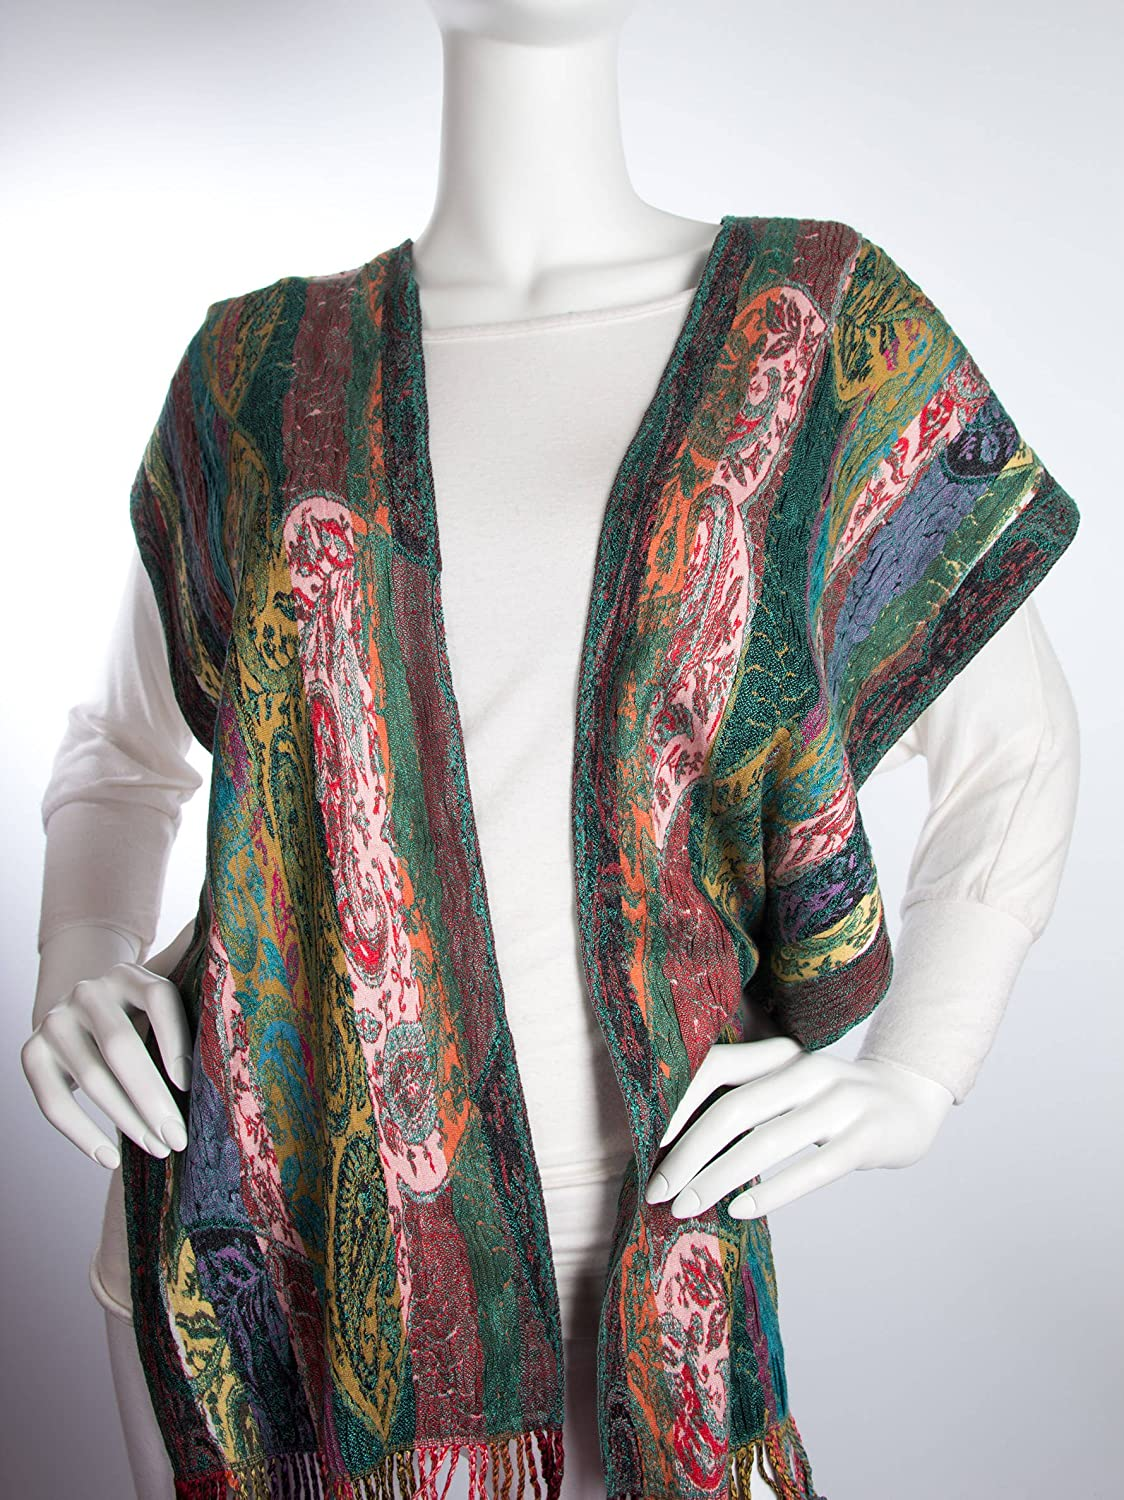 Vintage Scarves- New in the 1920s to 1960s Styles Bohomonde Elina Scarf Striped Woven Paisley Pashmina Scarf Hand Made in India $26.95 AT vintagedancer.com